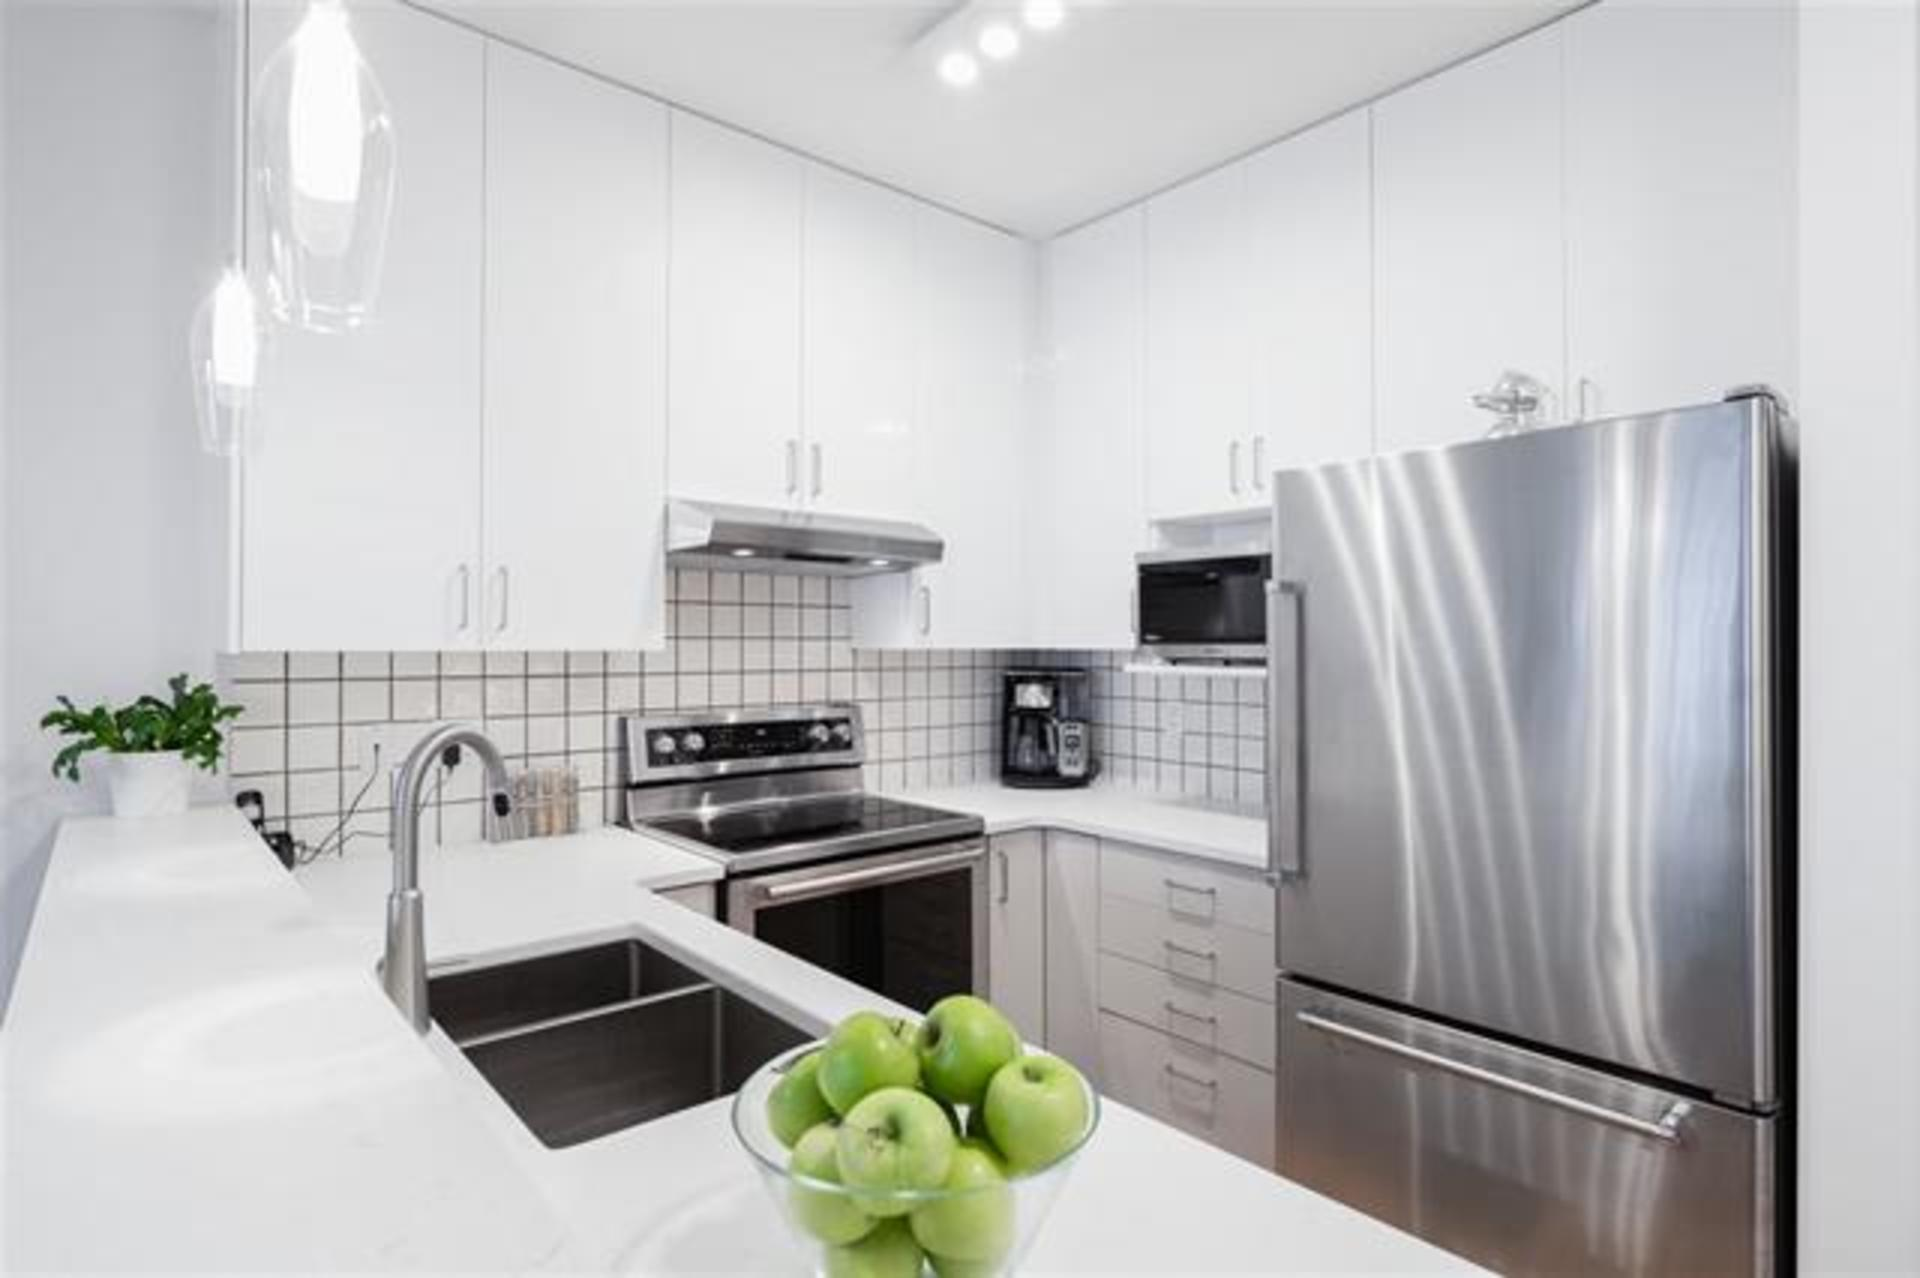 262466475-7 at 301 - 1388 Nelson Street, West End VW, Vancouver West